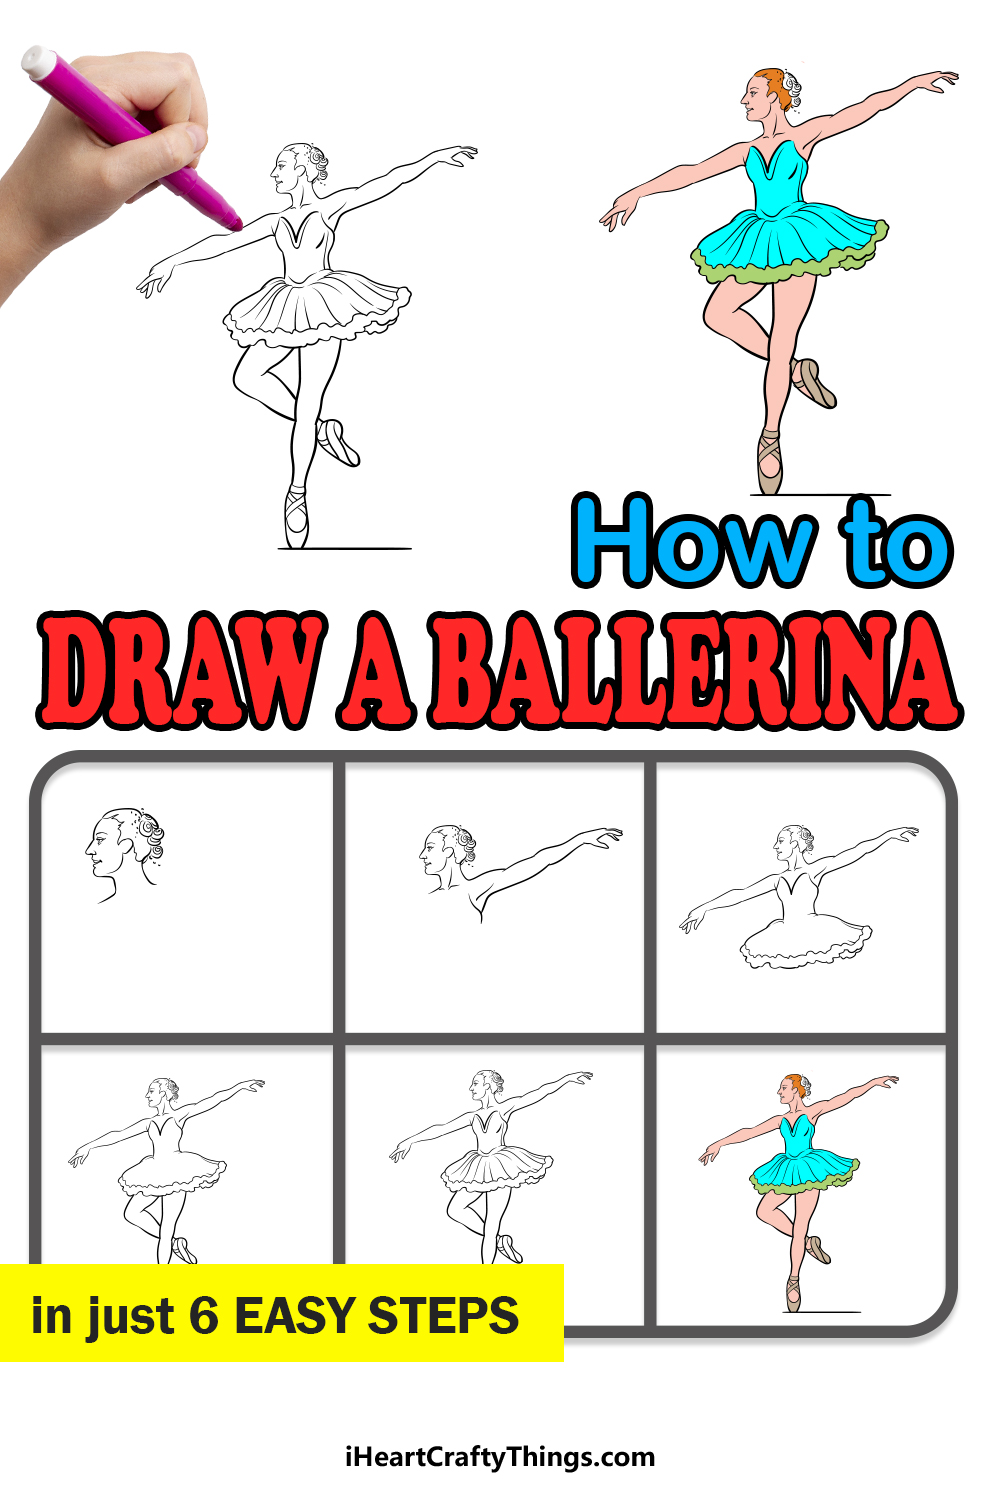 how to draw a ballerina in 6 easy steps